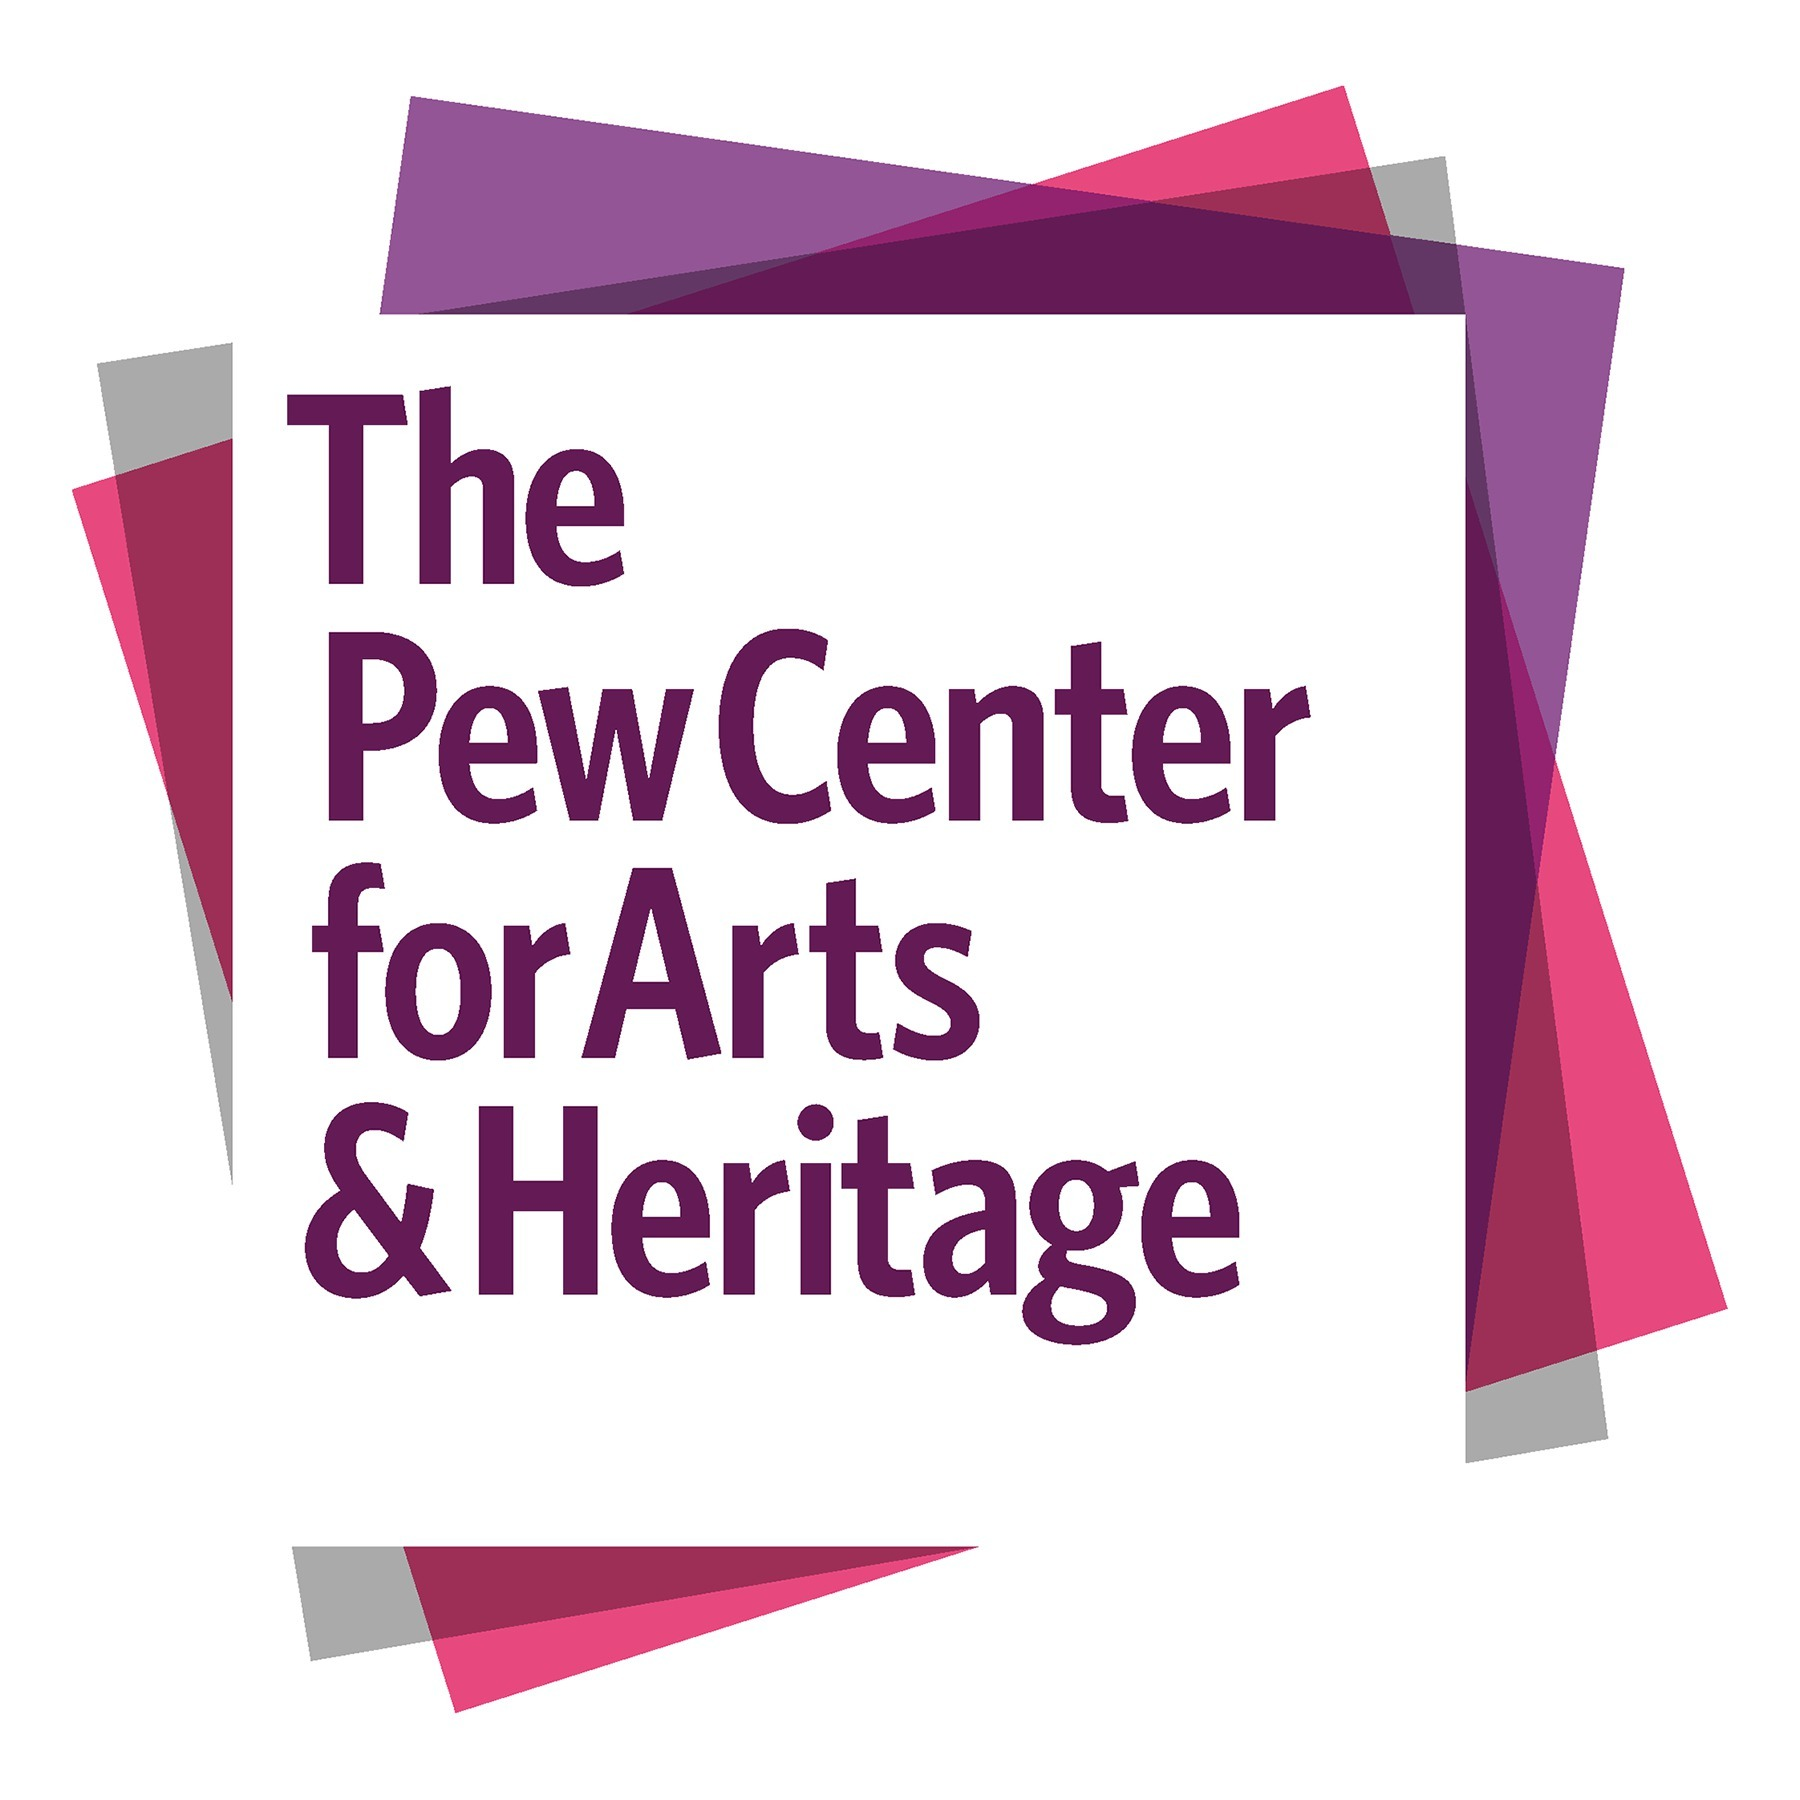 Departure and Discovery: New Directions at the Apex of Creativity is supported by The Pew Center for Arts & Heritage.